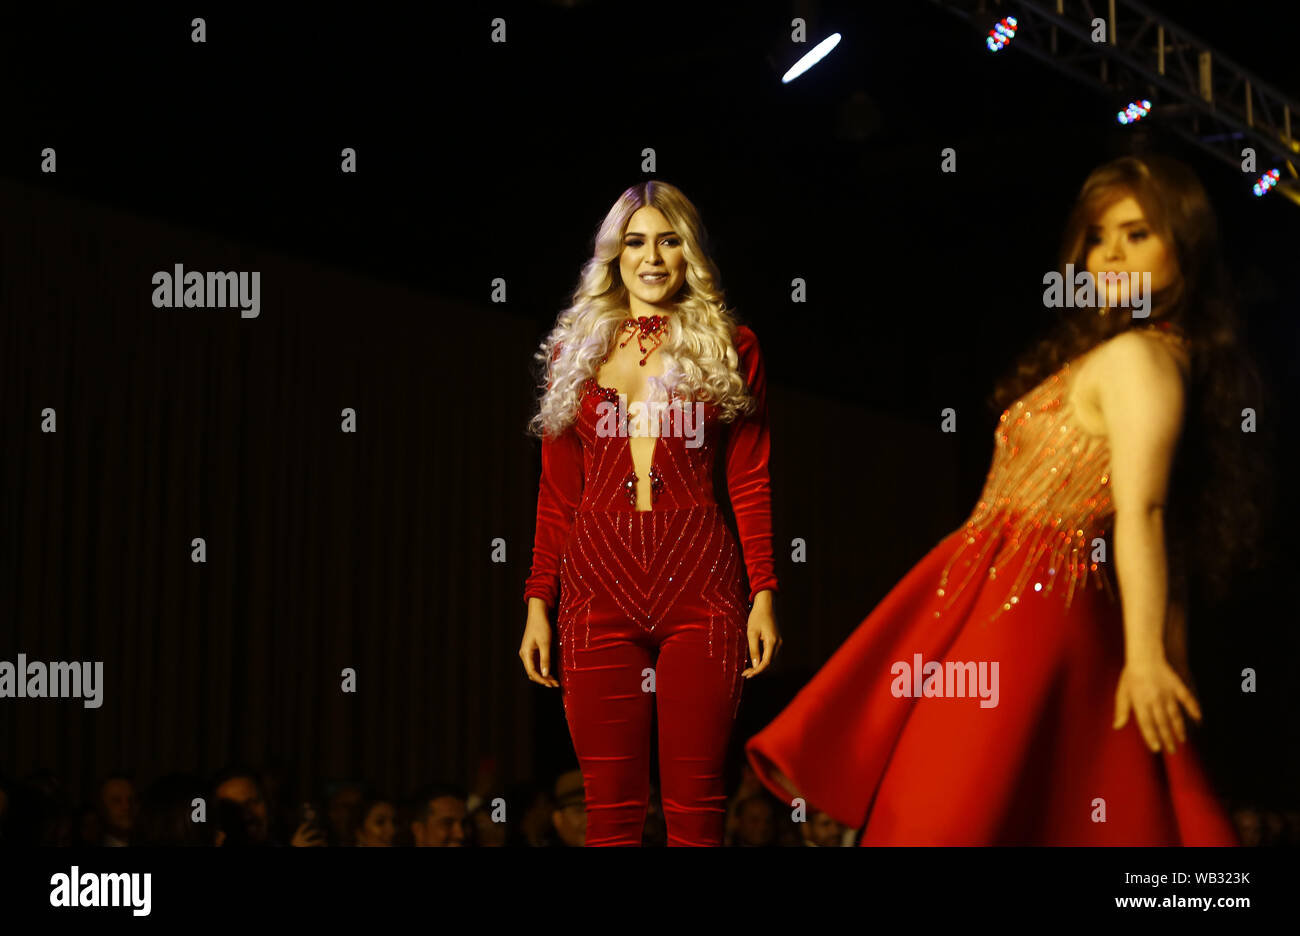 Valencia Carabobo Venezuela 22nd Aug 2019 August 23 2019 A Model With Down Syndrome R Participates In The Fashion Show Come Together By Fashion Designer Daniel Fabregas Who Included Among Its 150